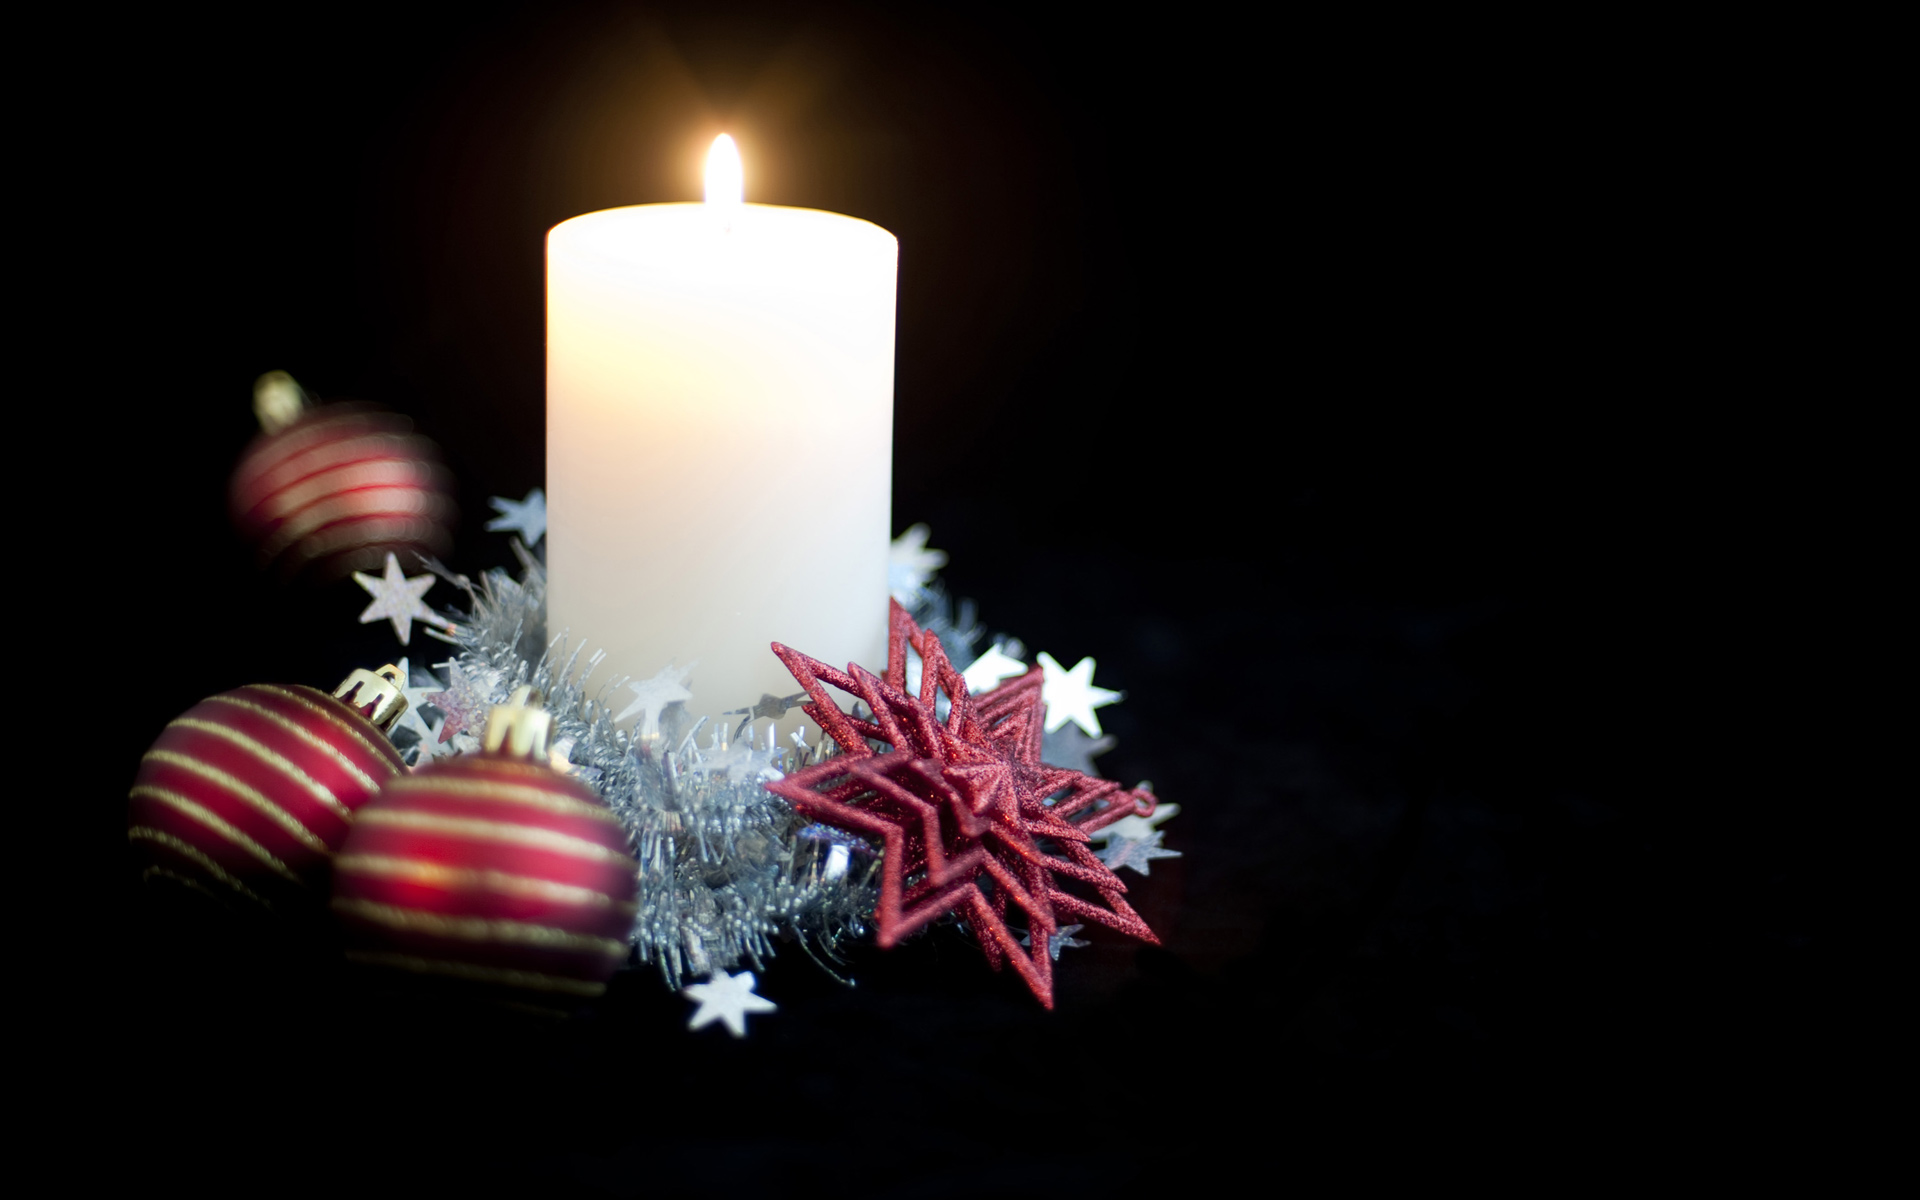 Free Download Christmas Candle Wallpaper 738392 1920x1200